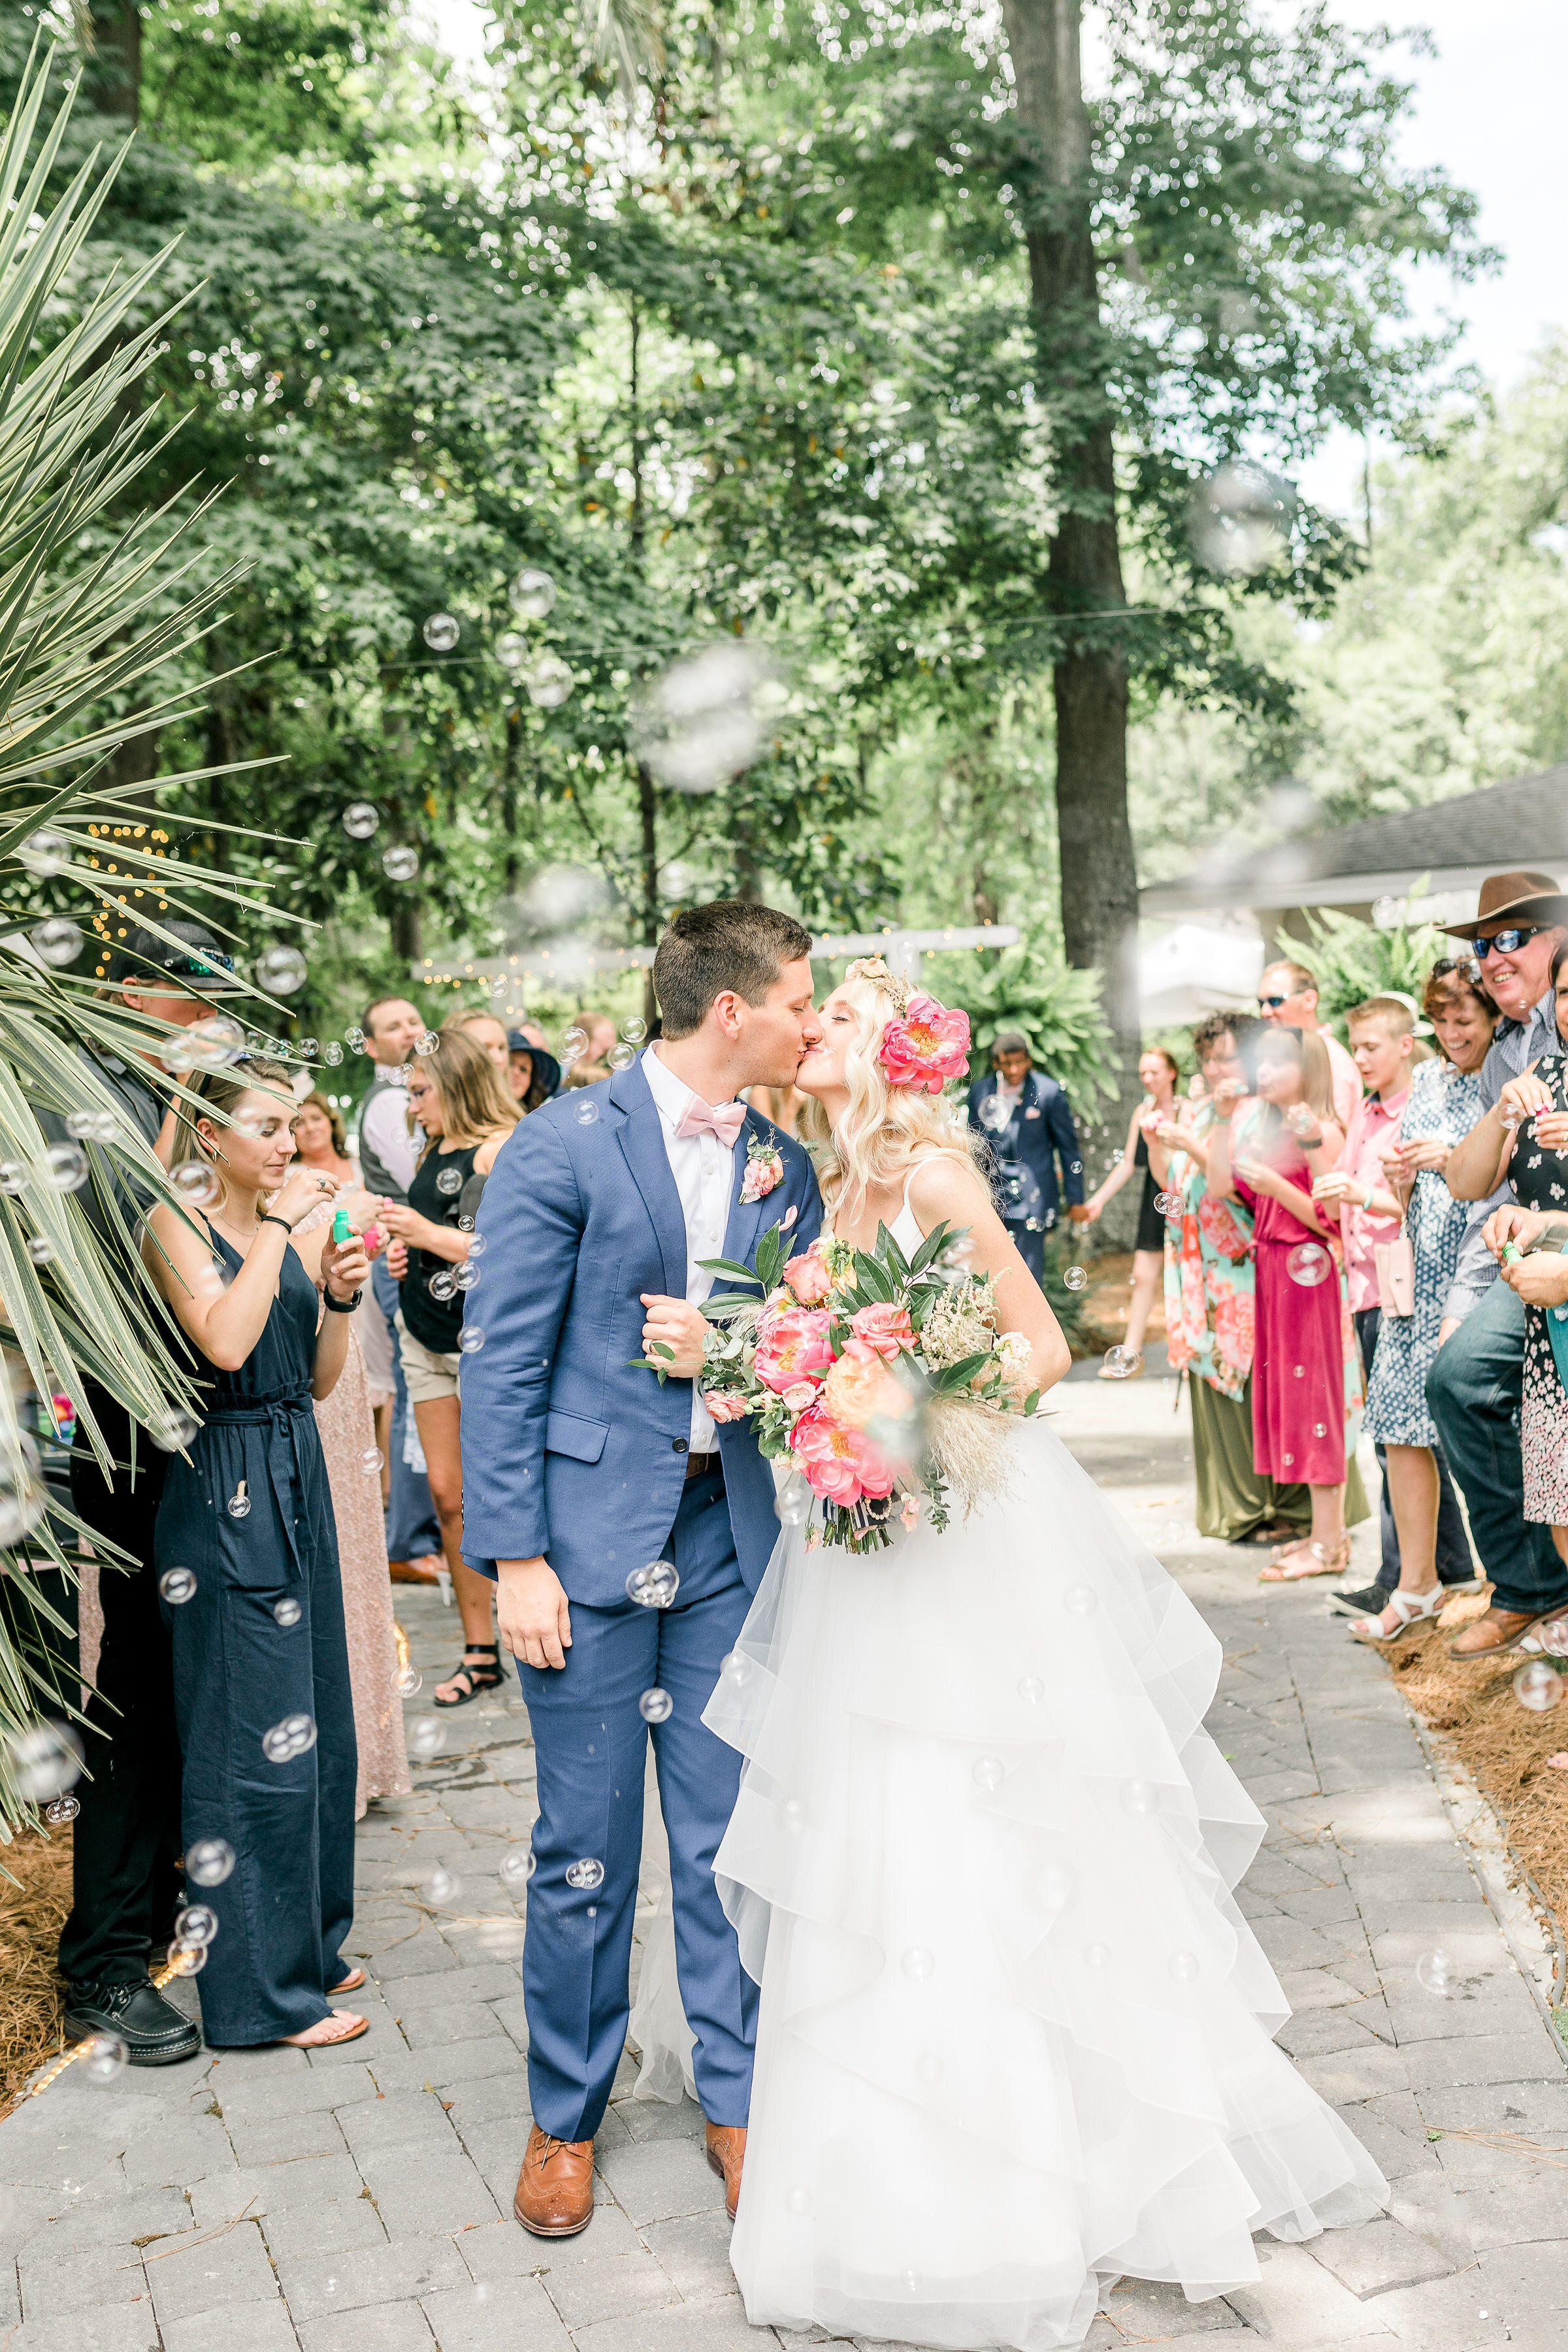 bubble-savannah-wedding-bright-flowers-pink-flowers-colorful-wedding-savannah-wedding-mackey-house-wedding-ivory-and-beau-gown-southern-couple-southern-wedding.jpg